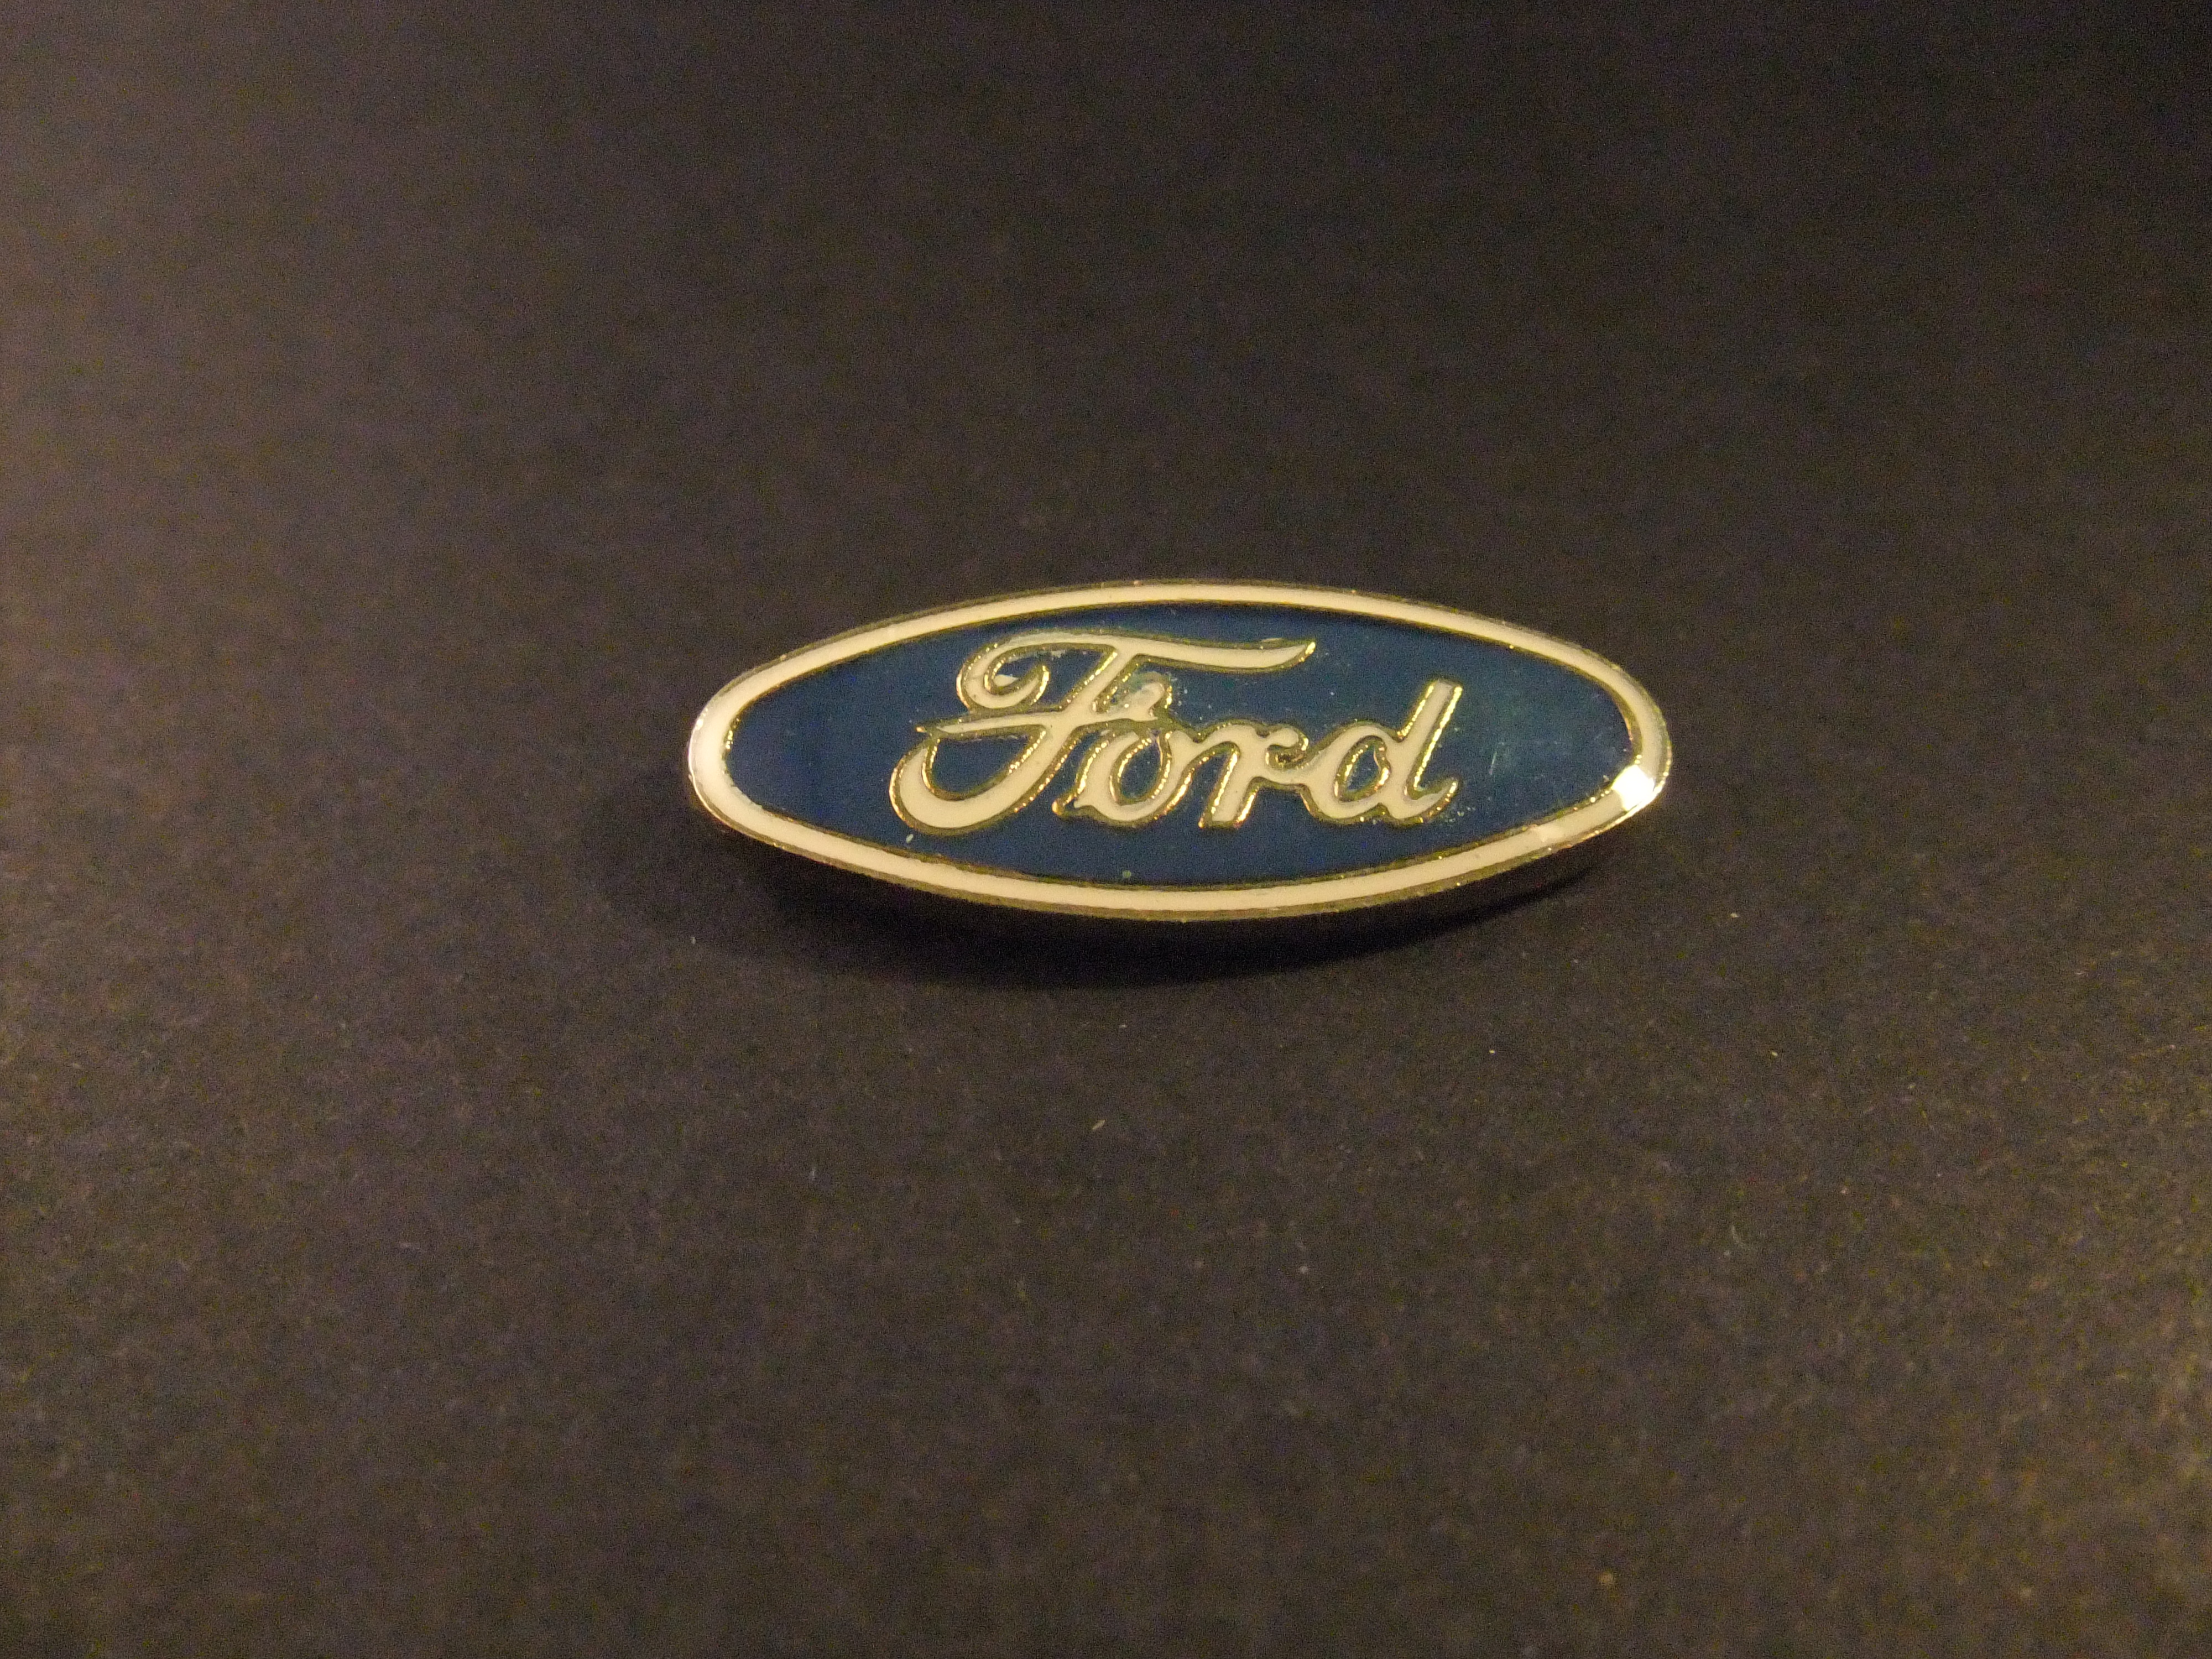 Ford logo één ring grote letters